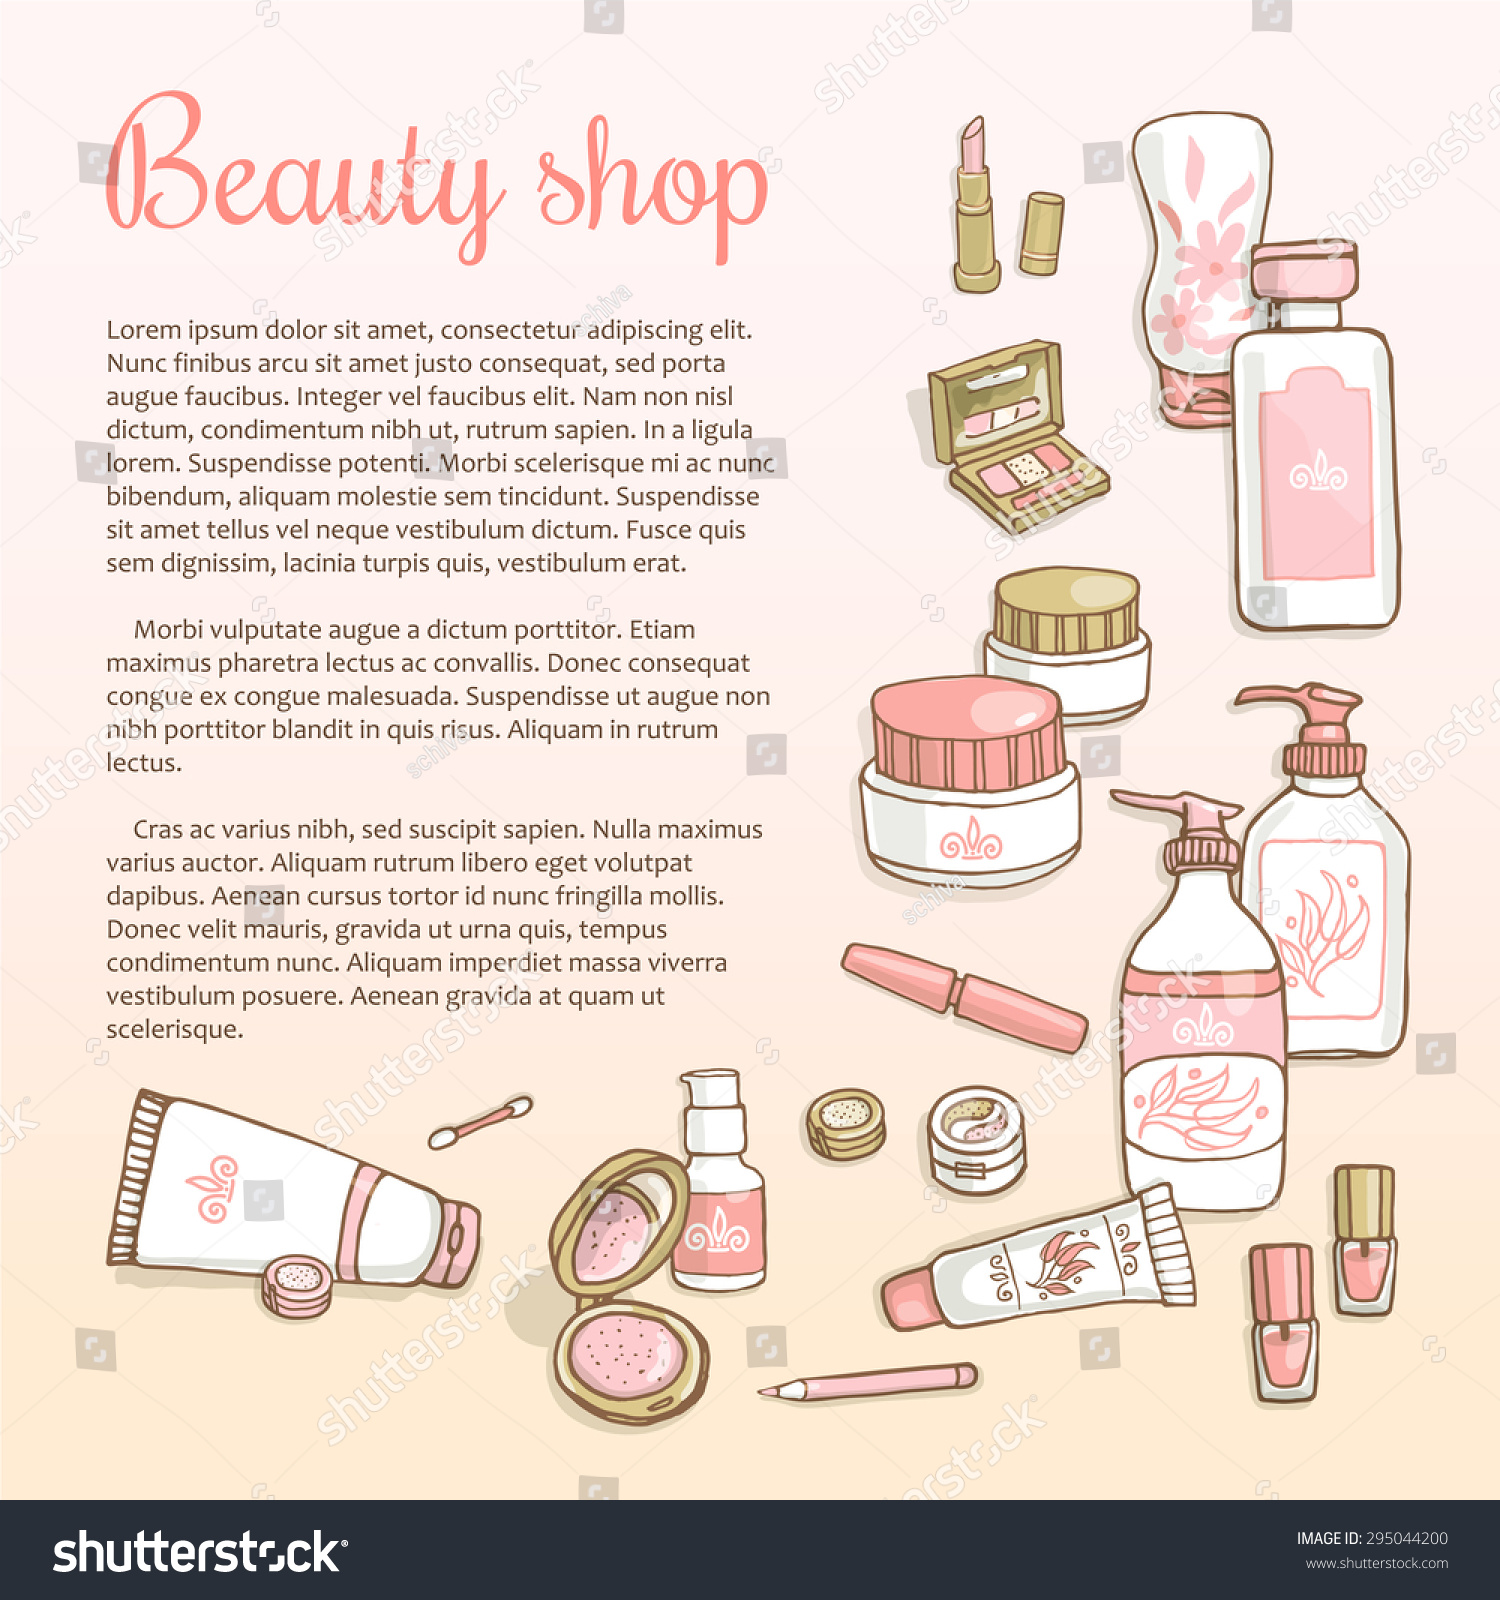 hand drawn flyers template makeup products stock vector  hand drawn flyers template for make up products doodle cosmetics background for corporate identity